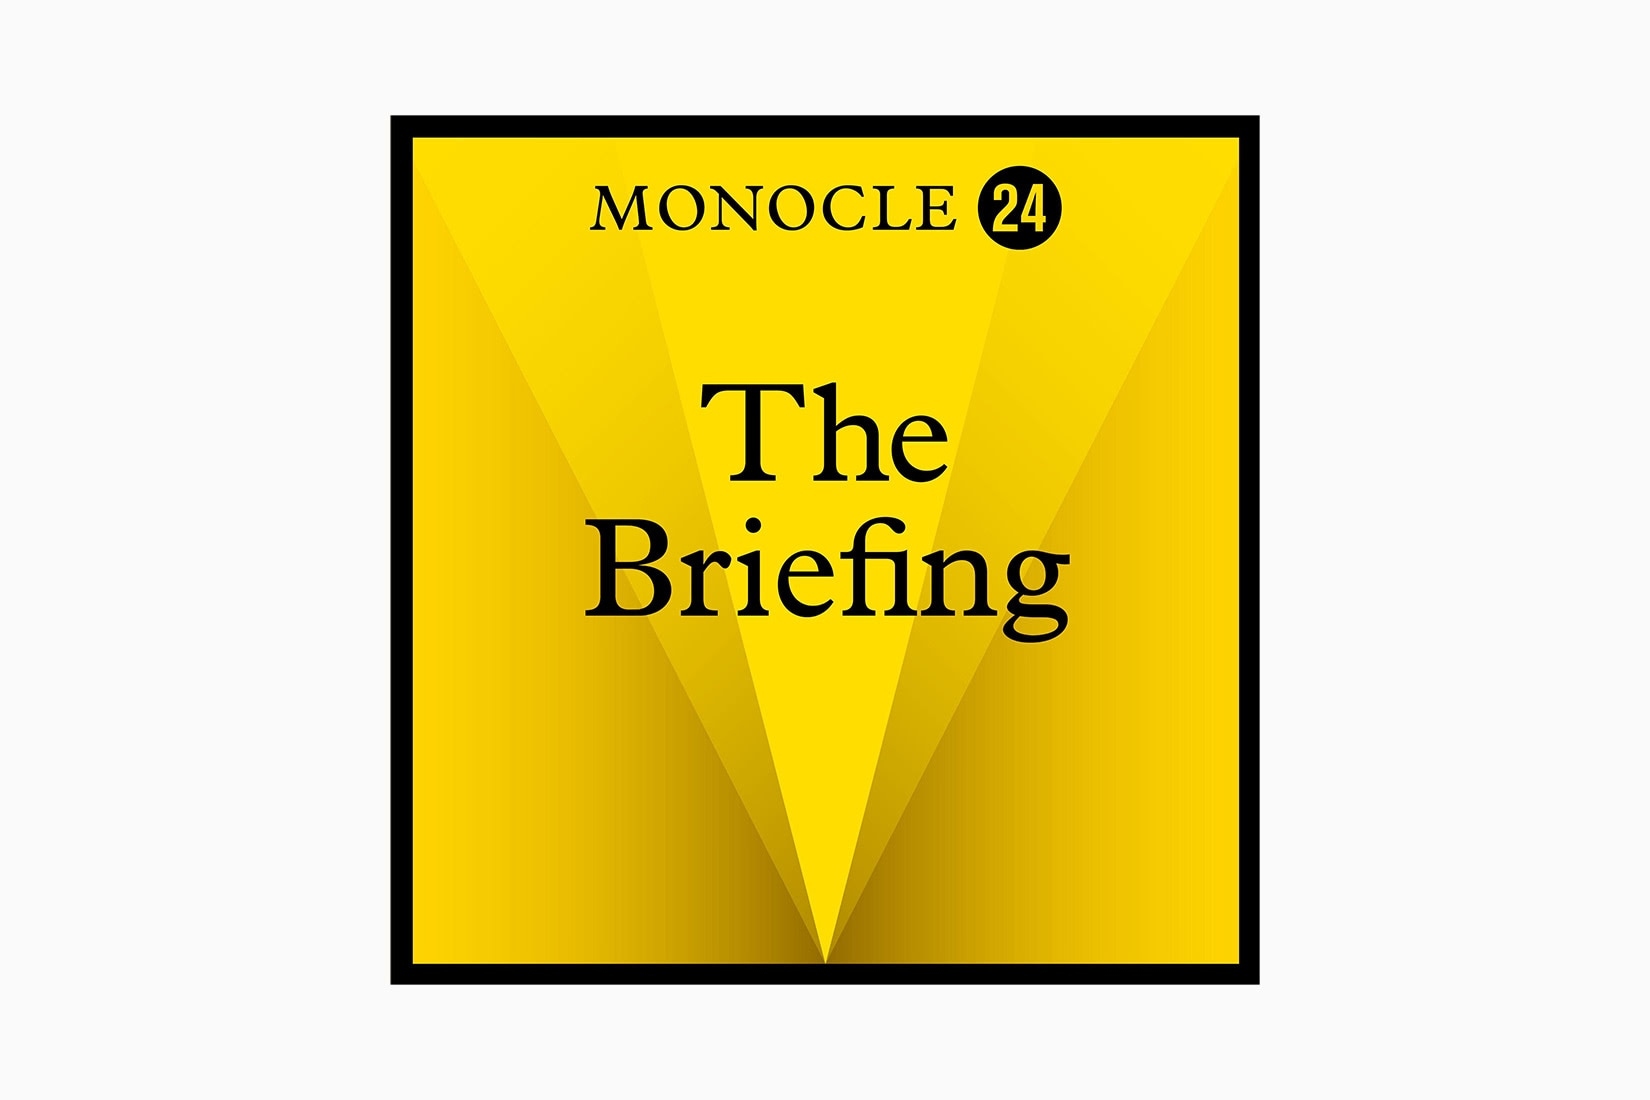 best podcasts the briefing monocle 24 luxe digital